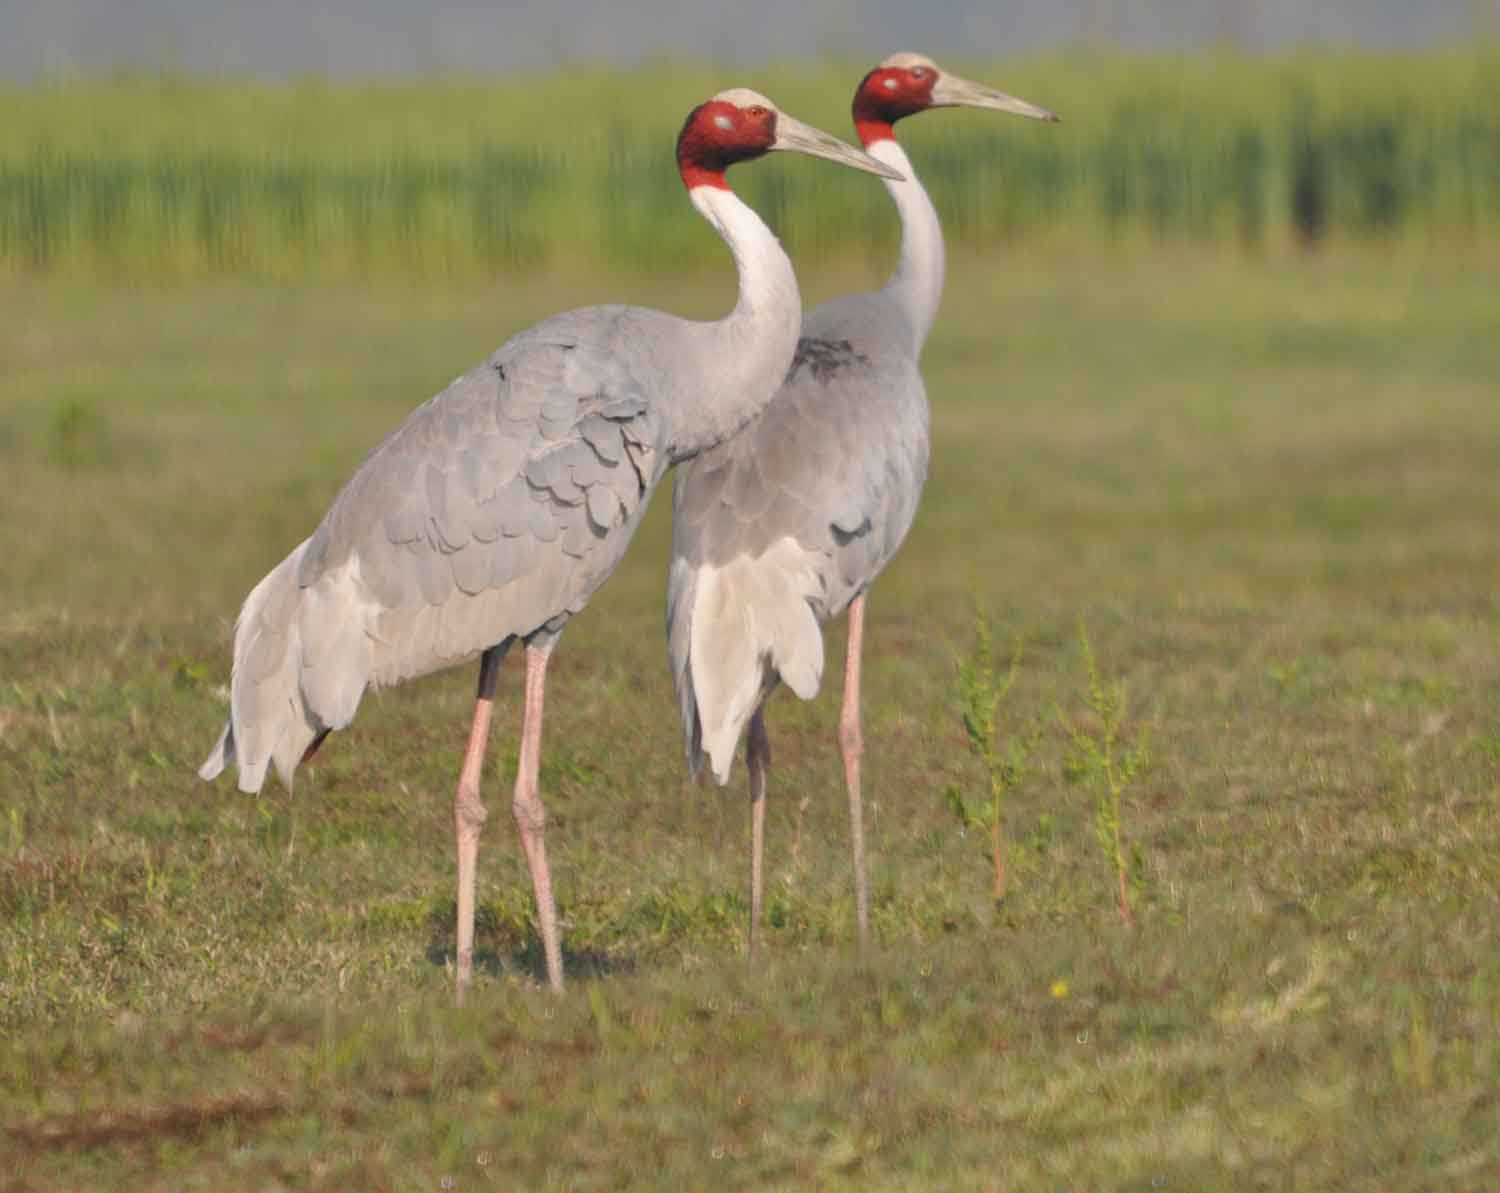 hindu single women in crane Top 6 places to spot sarus crane bird in india  the 5 most unsafe indian cities for women   abduction and crimes against the working women and single girls.